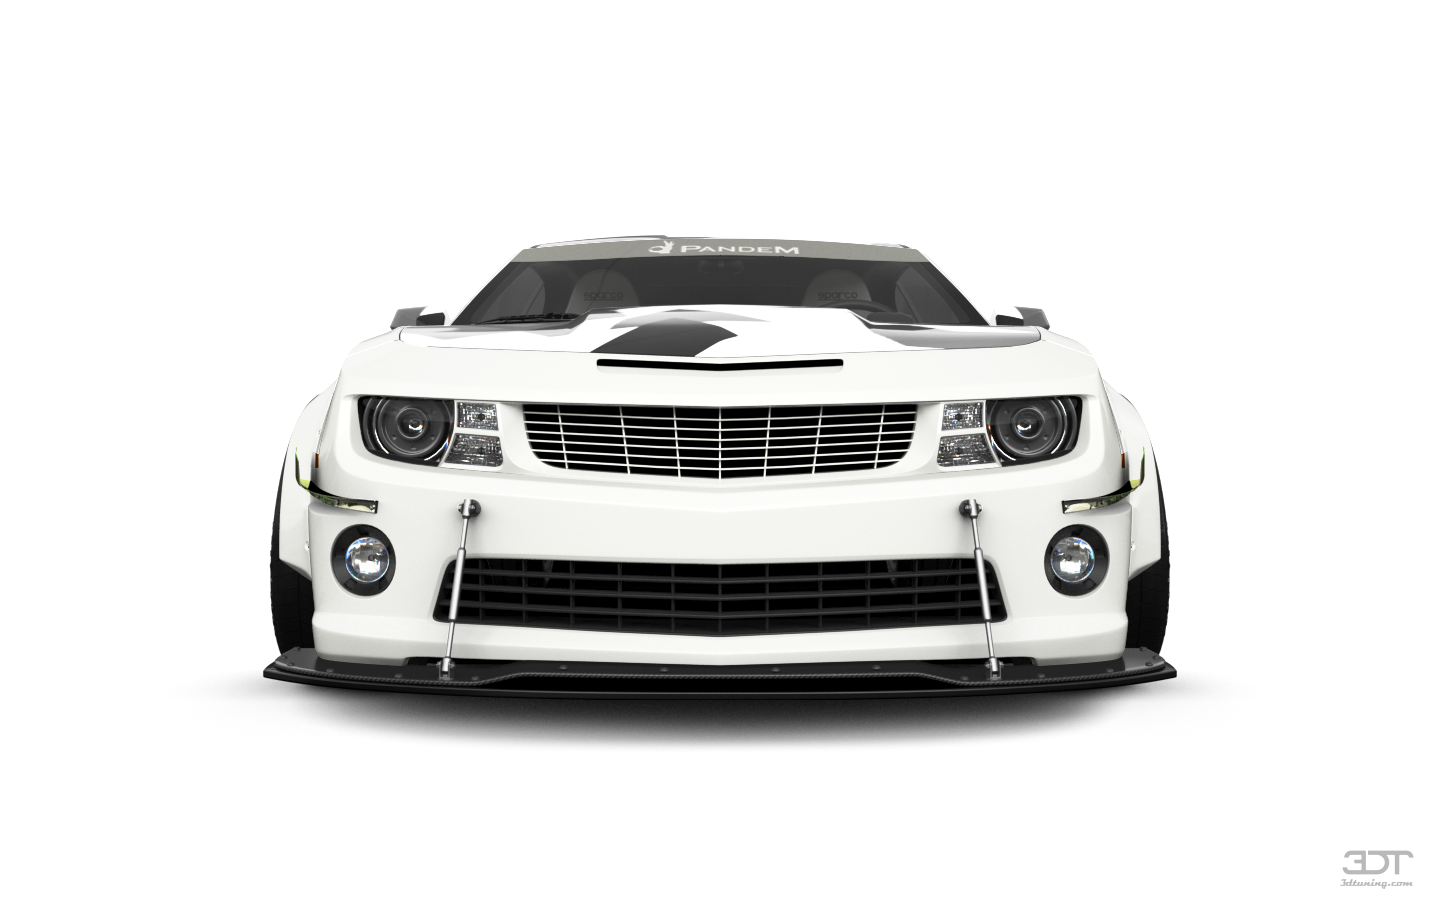 Chevrolet Camaro SS 2 Door Coupe 2010 tuning